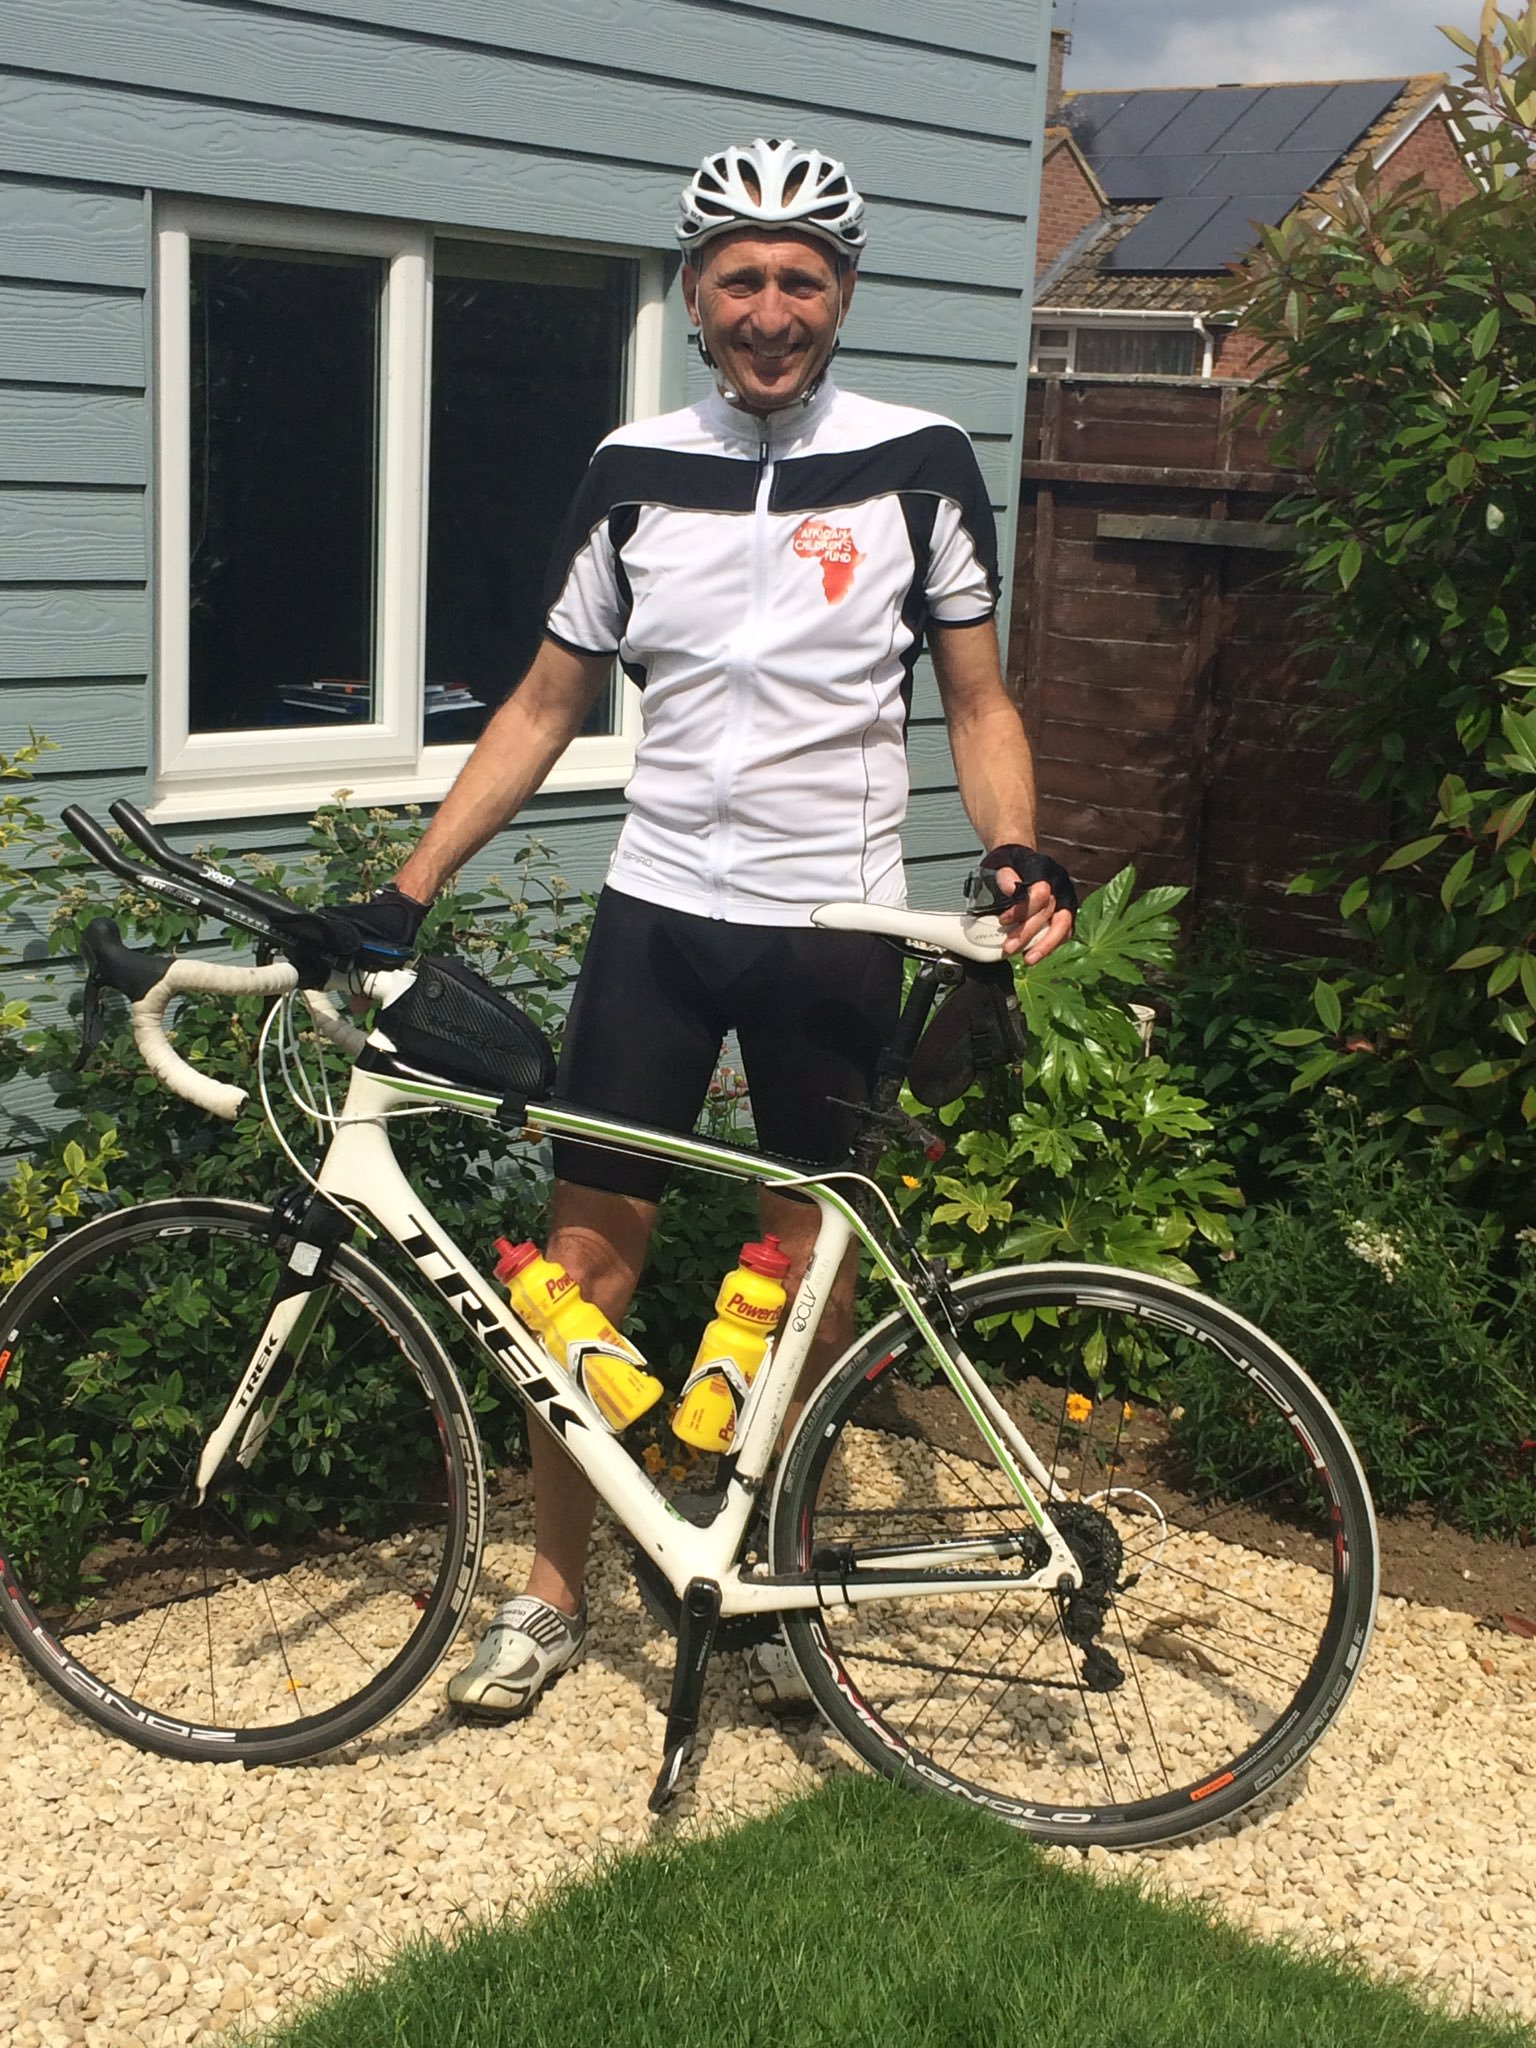 Steve standing behind a white, Trek bicycle wearing a white & black cycling jersey that also includes the African Children's Fund logo.